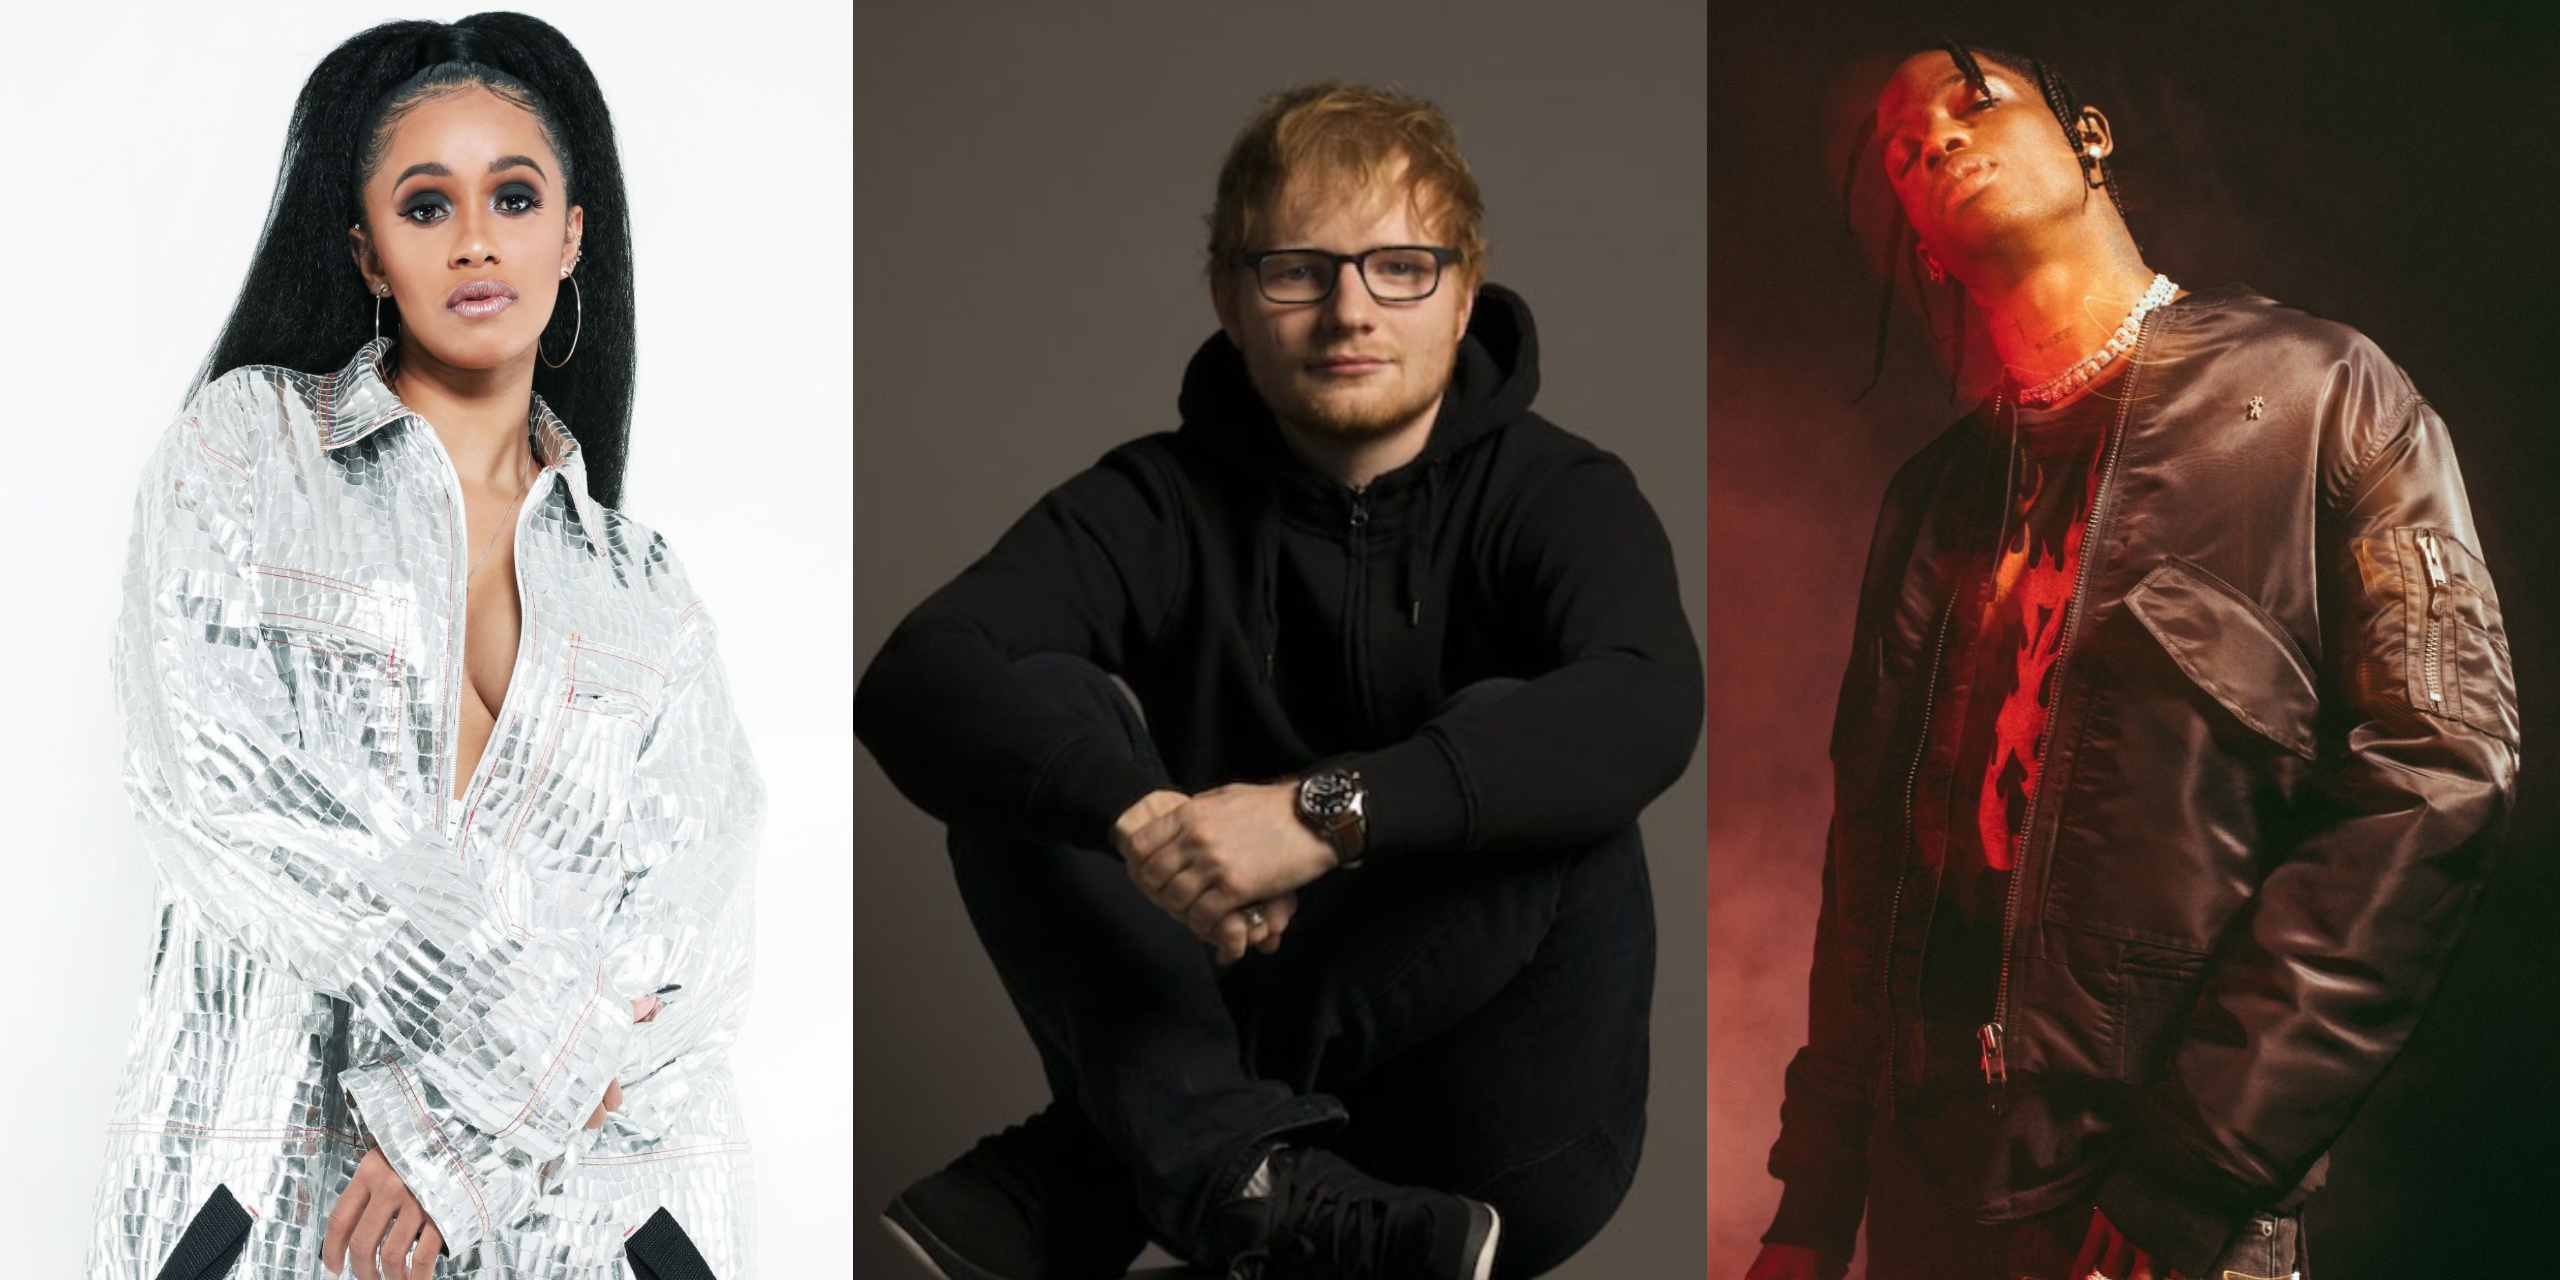 Ed Sheeran releases track list for No. 6 Collaborations Project, features Cardi B, Travis Scott, Skrillex and more